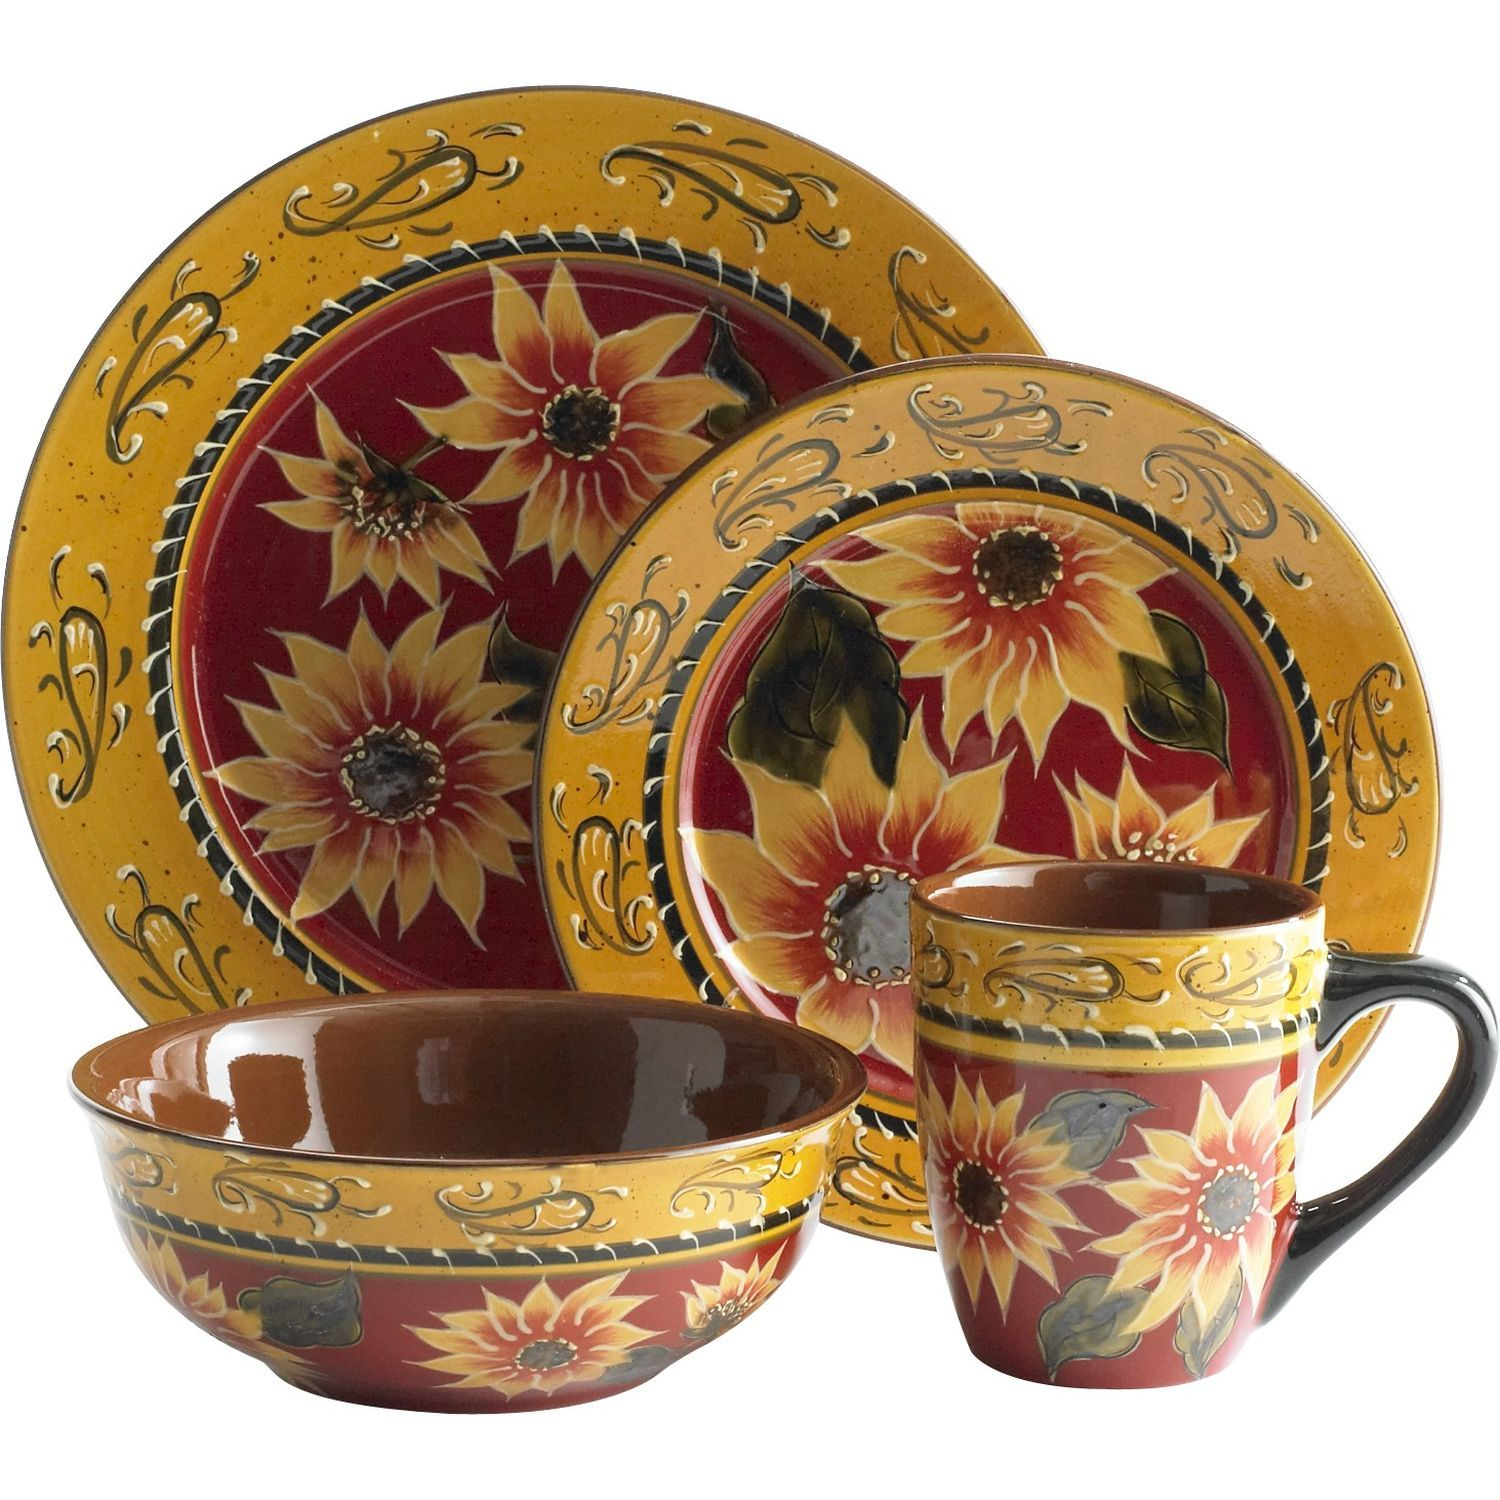 Sunflower Dinnerware | Pier1 | Pinterest | Sunflowers, Dinnerware ...